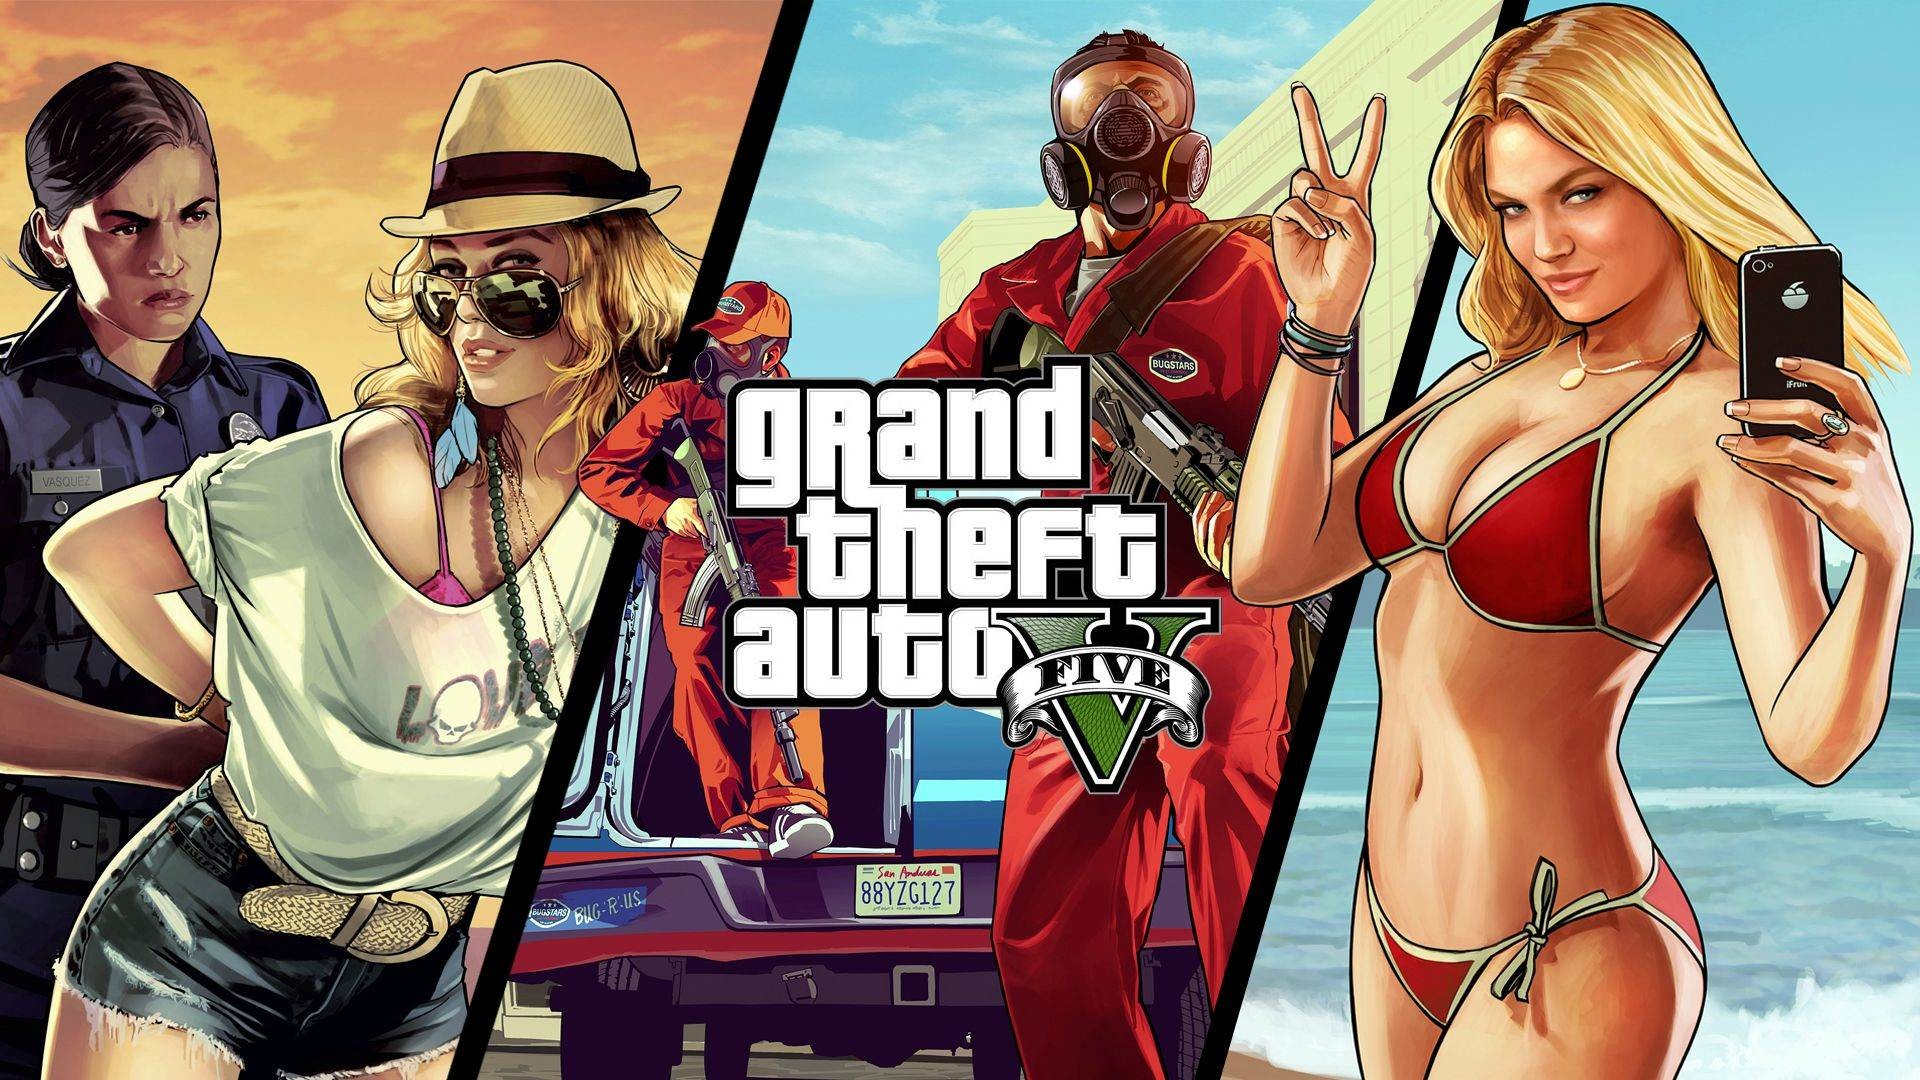 1920x1080 Grand theft auto hd wallpapers Group 1280×720 Gta V Wallpaper | Adorable  Wallpapers